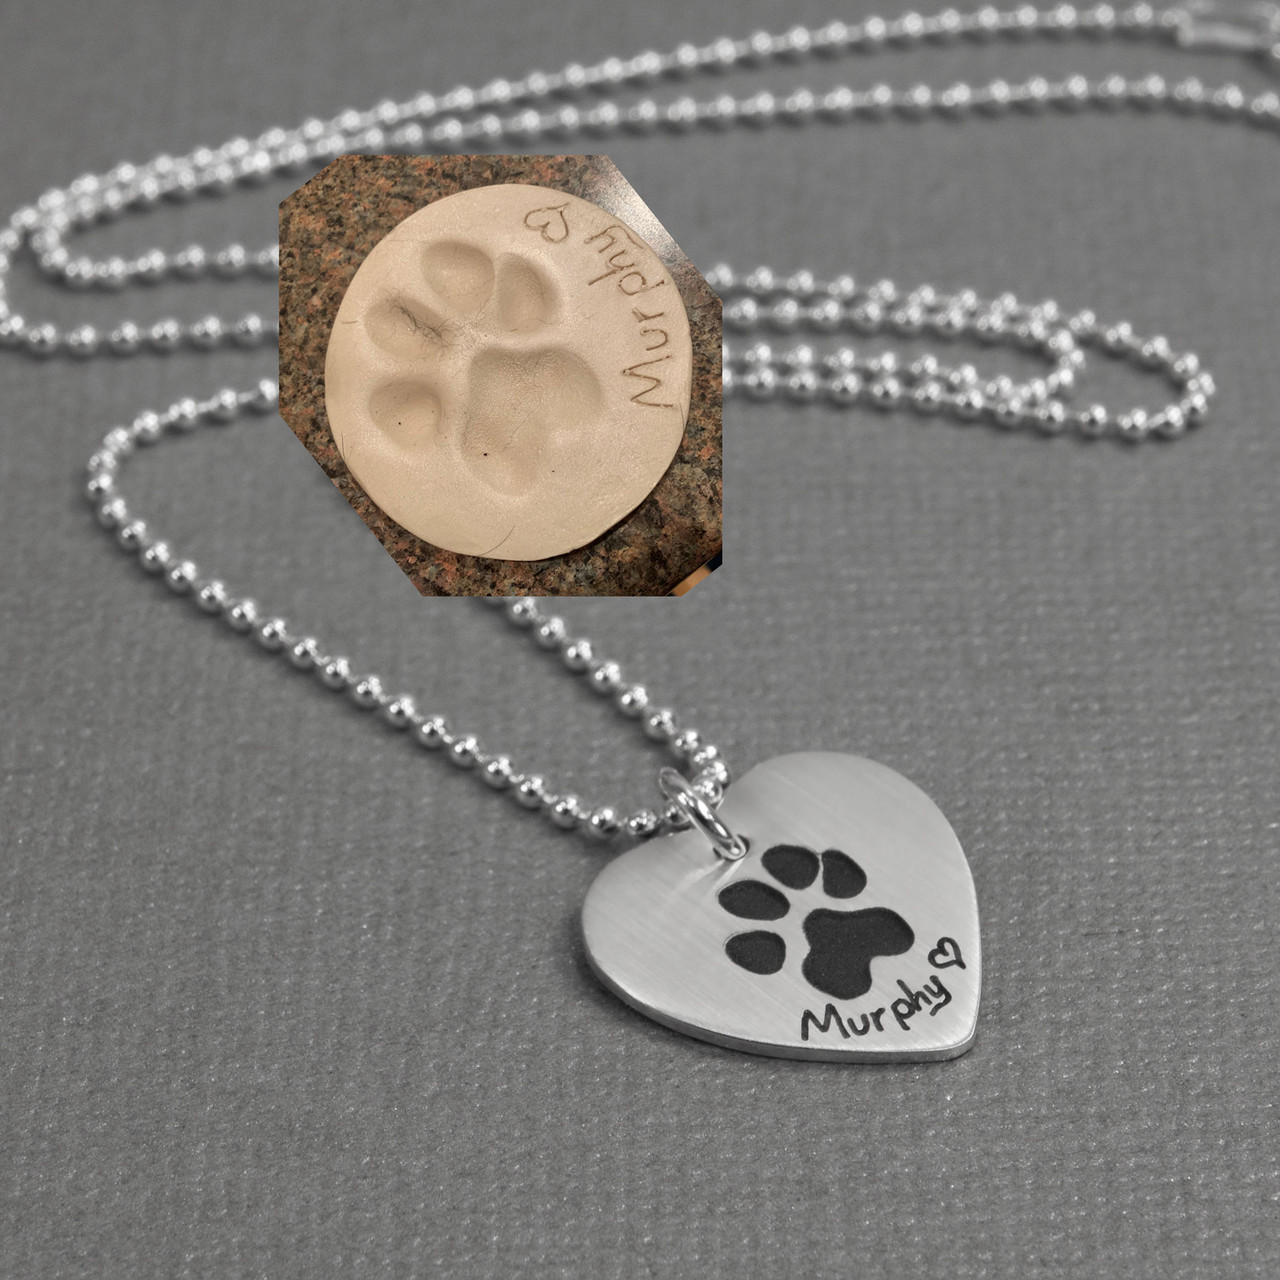 Your Pet's Paw Print on Heart Necklace, shown with original print